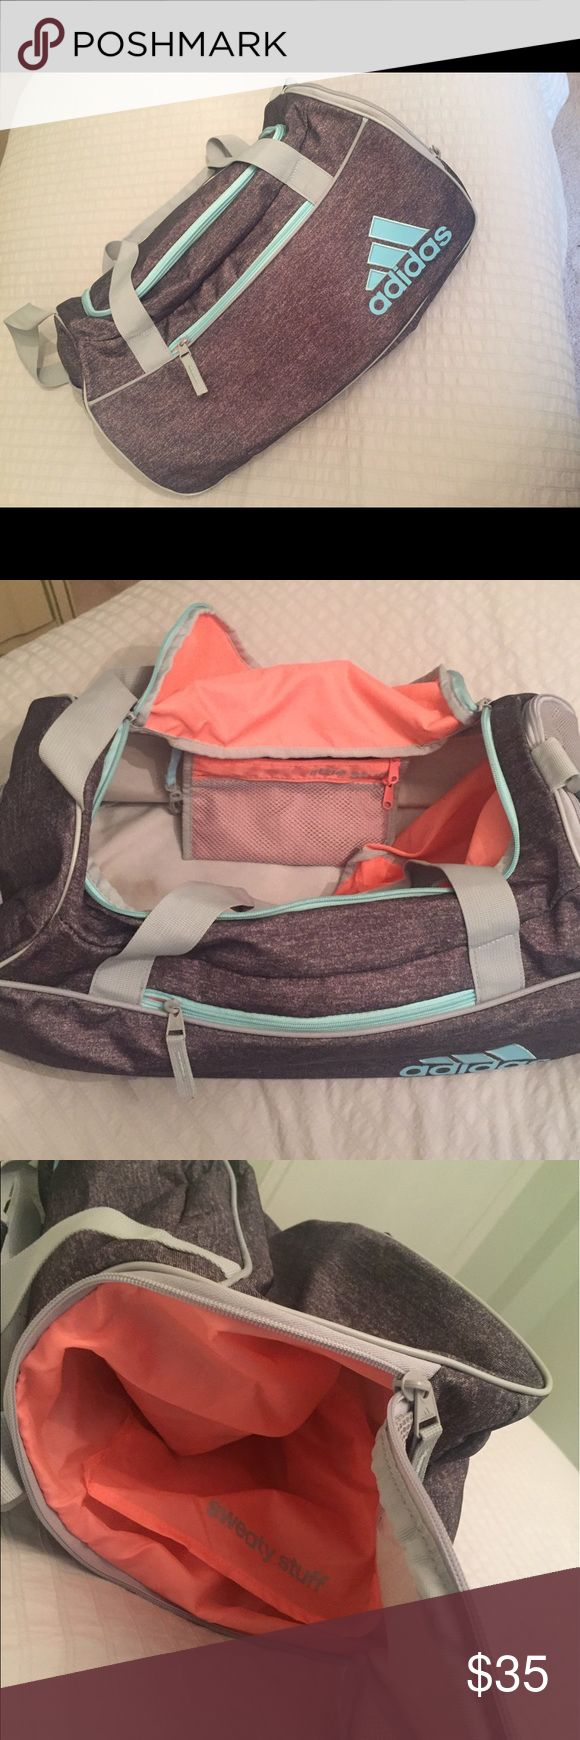 Adidas women duffel bag Perfect conditions..used twice cute colors is medium size Dimensions 12''x11''x21'' Roomy zip main compartment; Side zip pocket; Mesh pocket on end, adjustable shoulder strap,padded carry handles adidas Bags Travel Bags